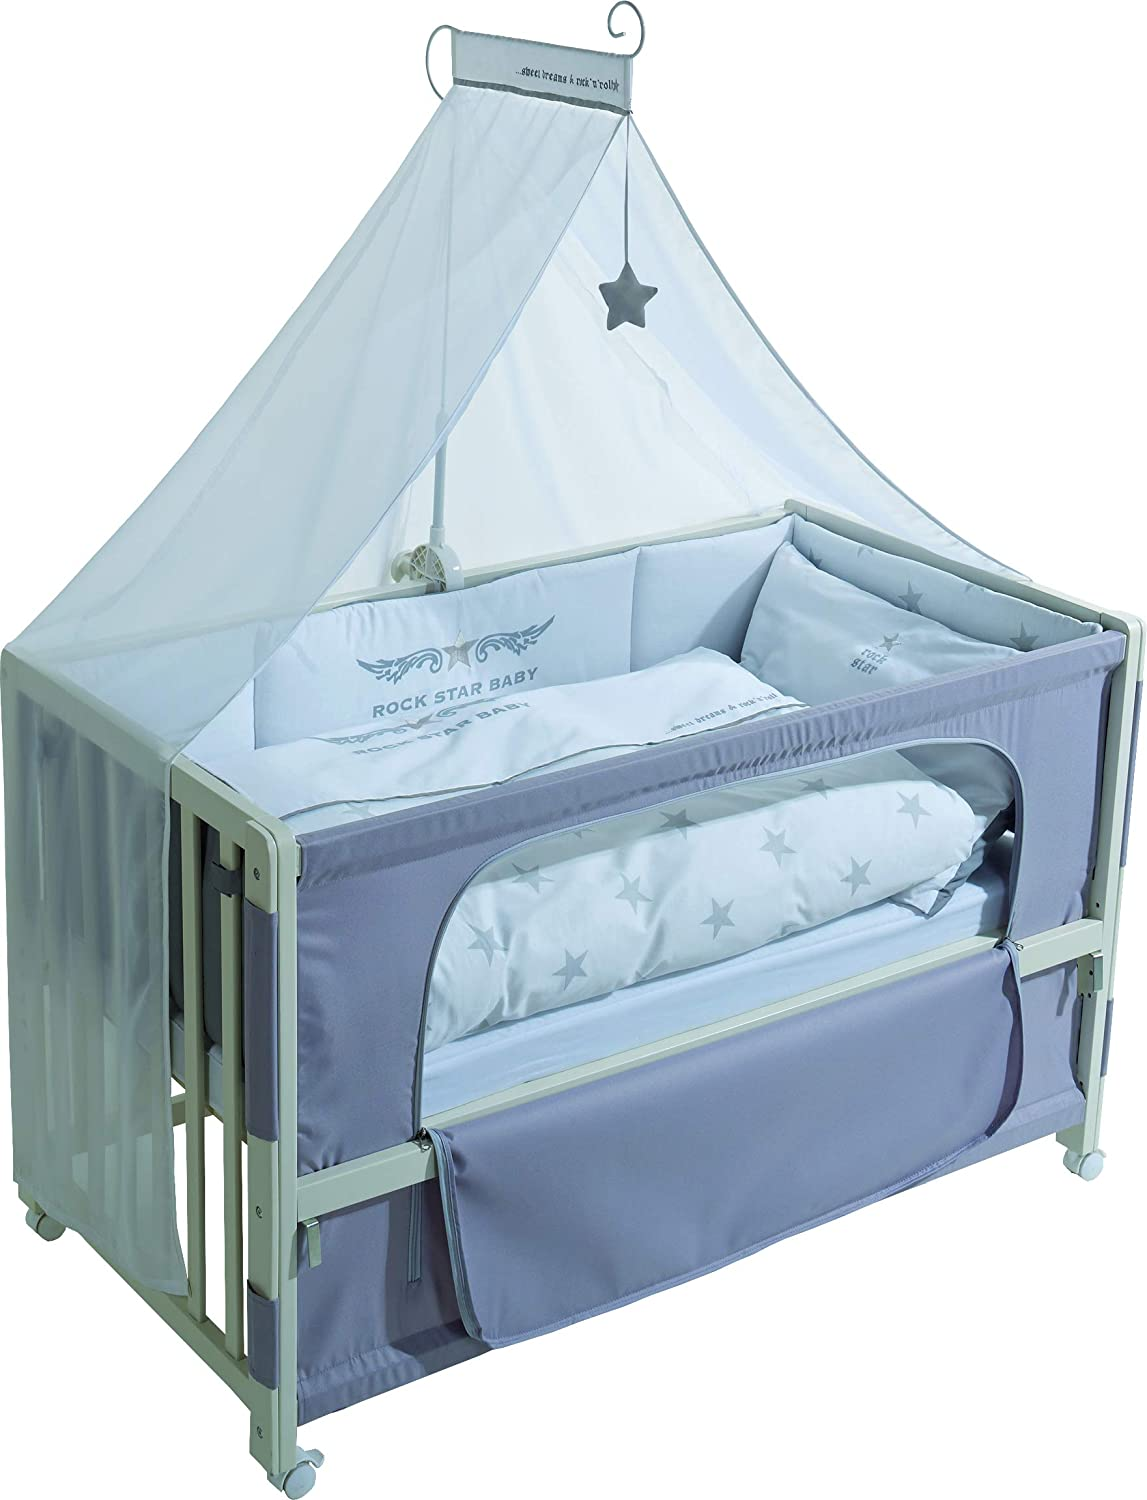 roba Roombed Rock Star Baby 2